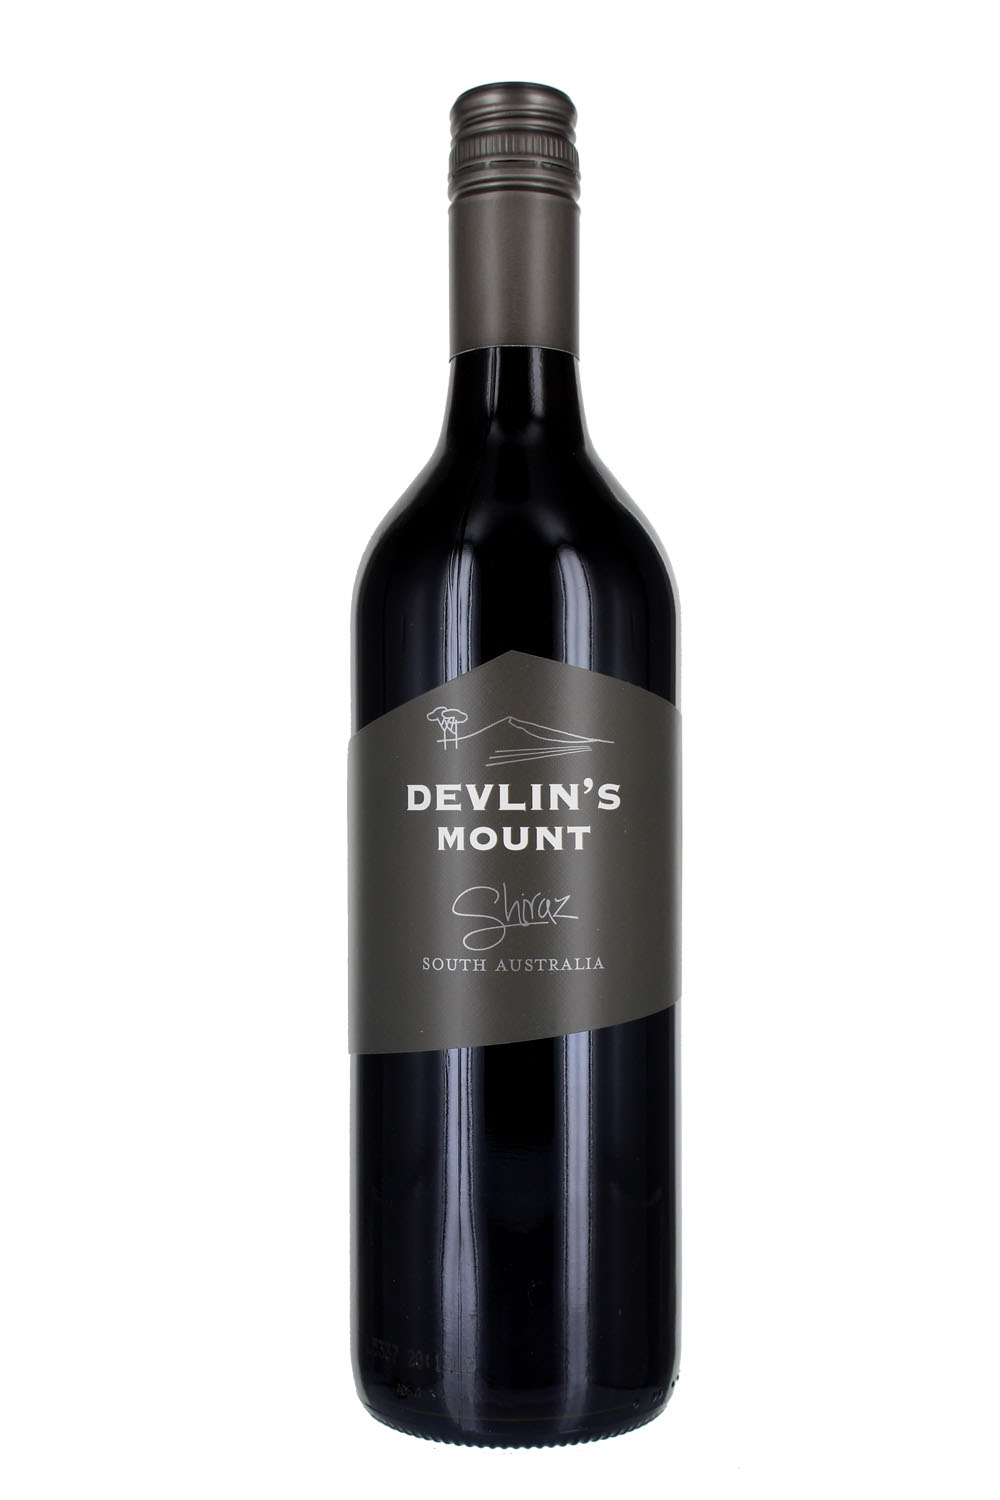 2017 Devlin's Mount Shiraz, South Australia (Case)